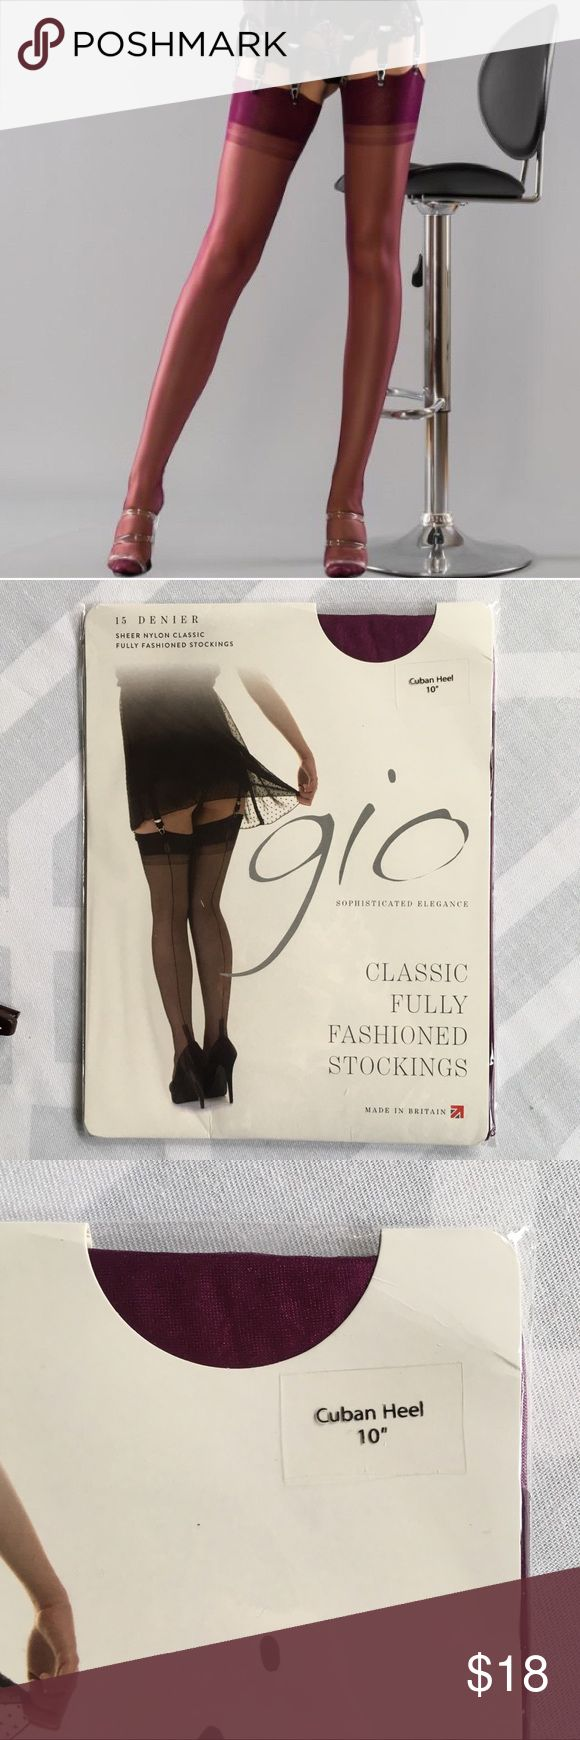 """GIO Cuban Heel Contrast Seam Stockings GIO Purple Cuban Heel Contrast Seam Thigh High Stockings. 10"""" Cuban Heel Detail at Ankle. Fully Fashioned (FFS) High Quality, Vintage Pin-up Burlesque Style, Modern Fit. Sheer 15 Denier Hold Ups. Perfect with a sexy garter.  """"Gio are a British hosiery house who use the finest nylon to lovingly produce hand made, sheer 100% nylon fully fashioned stockings.""""  New, New With Tags, NWT, NIB, Never Worn.   Size Medium, 10, UK 6-7, EU 39-40  {1st pic is a…"""